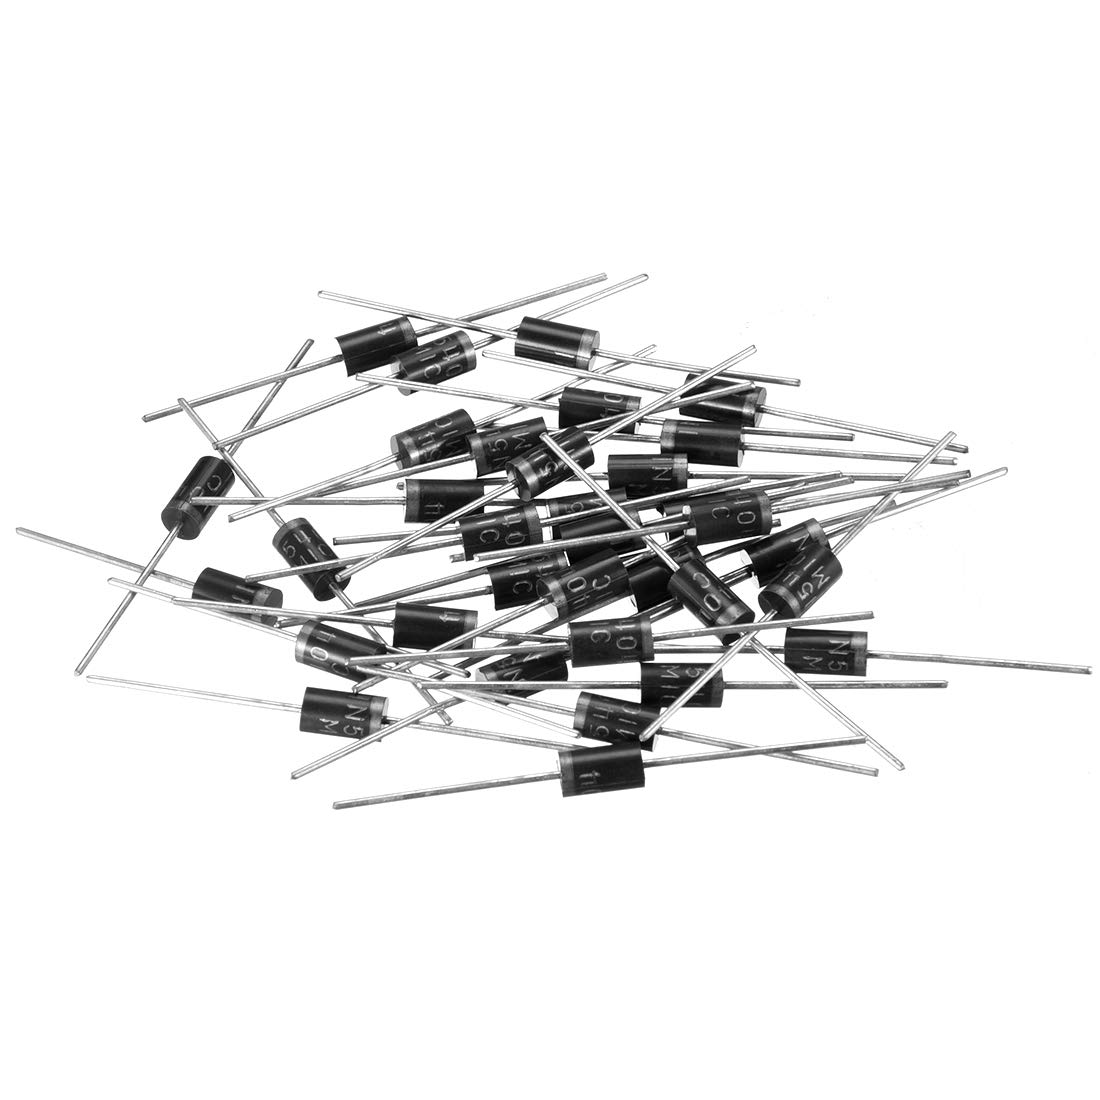 uxcell 50pcs Schottky Rectifier Diode 1A 100V Axial Electronic Silicon Diodes for 1N4002